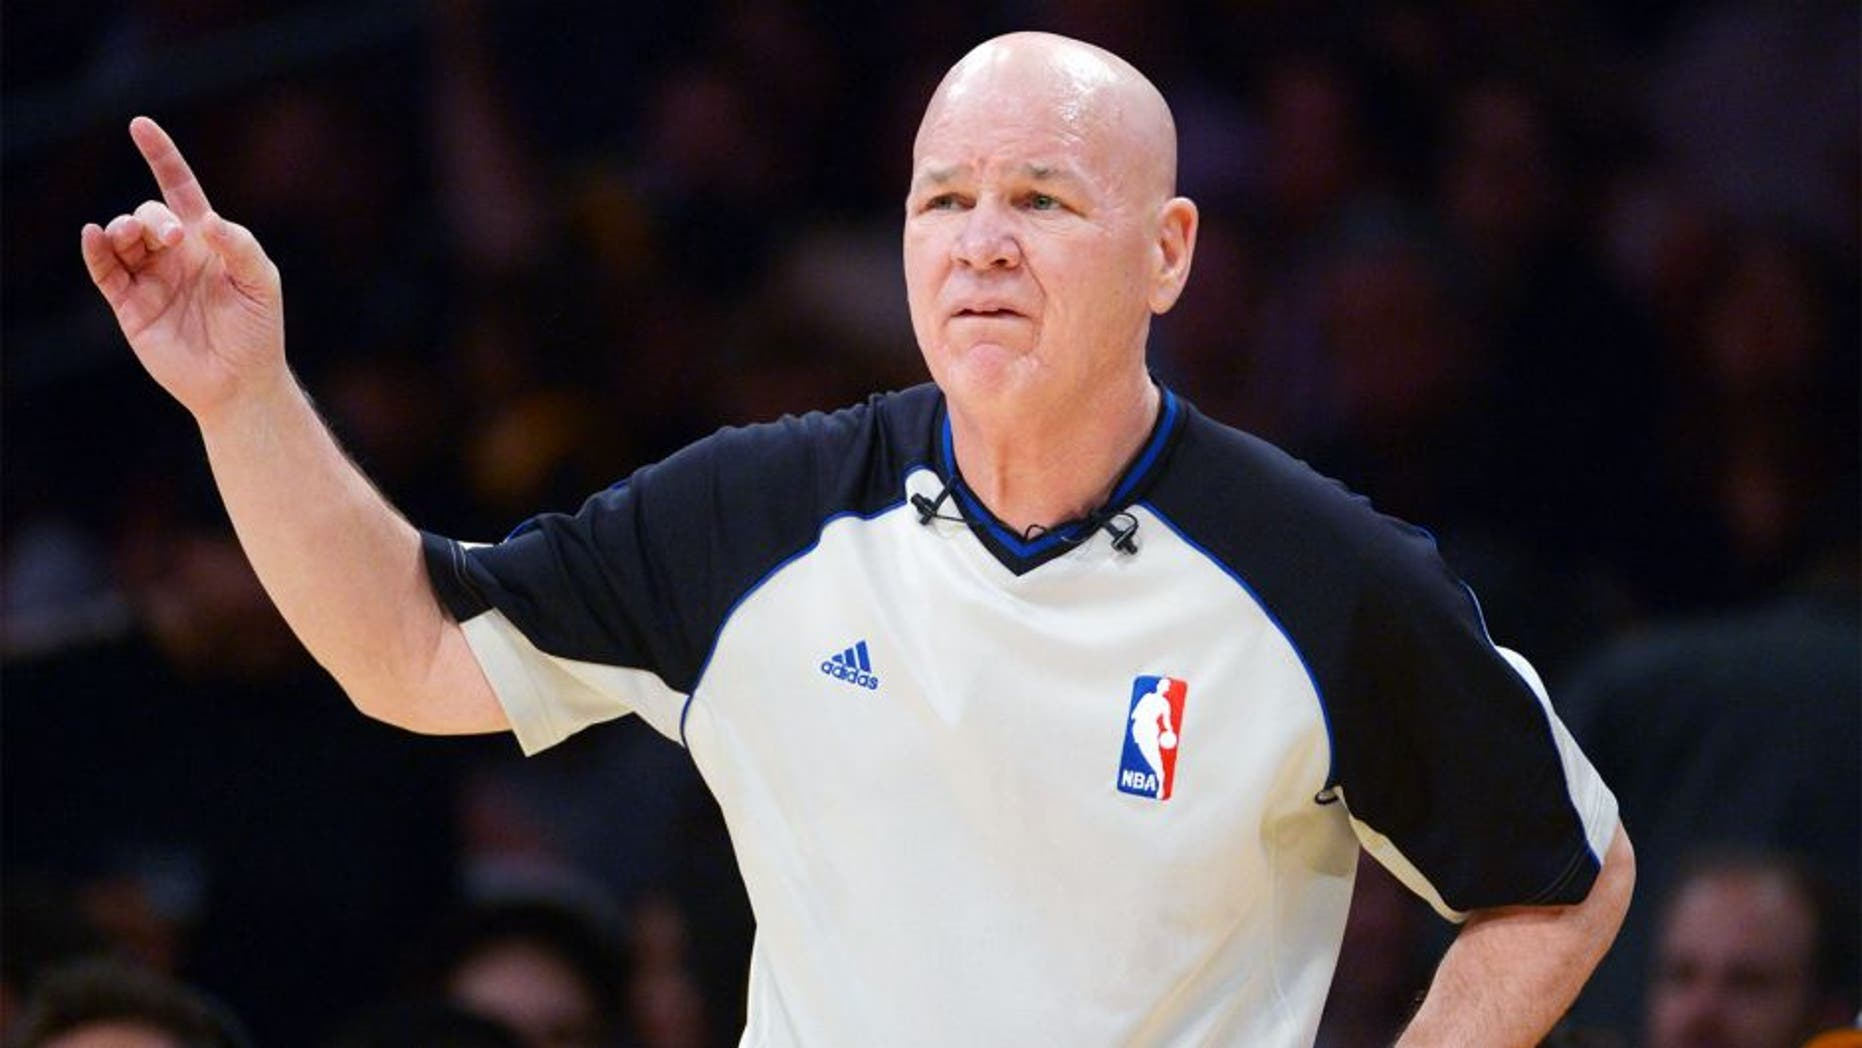 Dec 10, 2013; Los Angeles, CA, USA; NBA referee Joey Crawford during the game between the Phoenix Suns and the Los Angeles Lakers at Staples Center. The Suns defeated the Lakers 114-108. Mandatory Credit: Kirby Lee-USA TODAY Sports